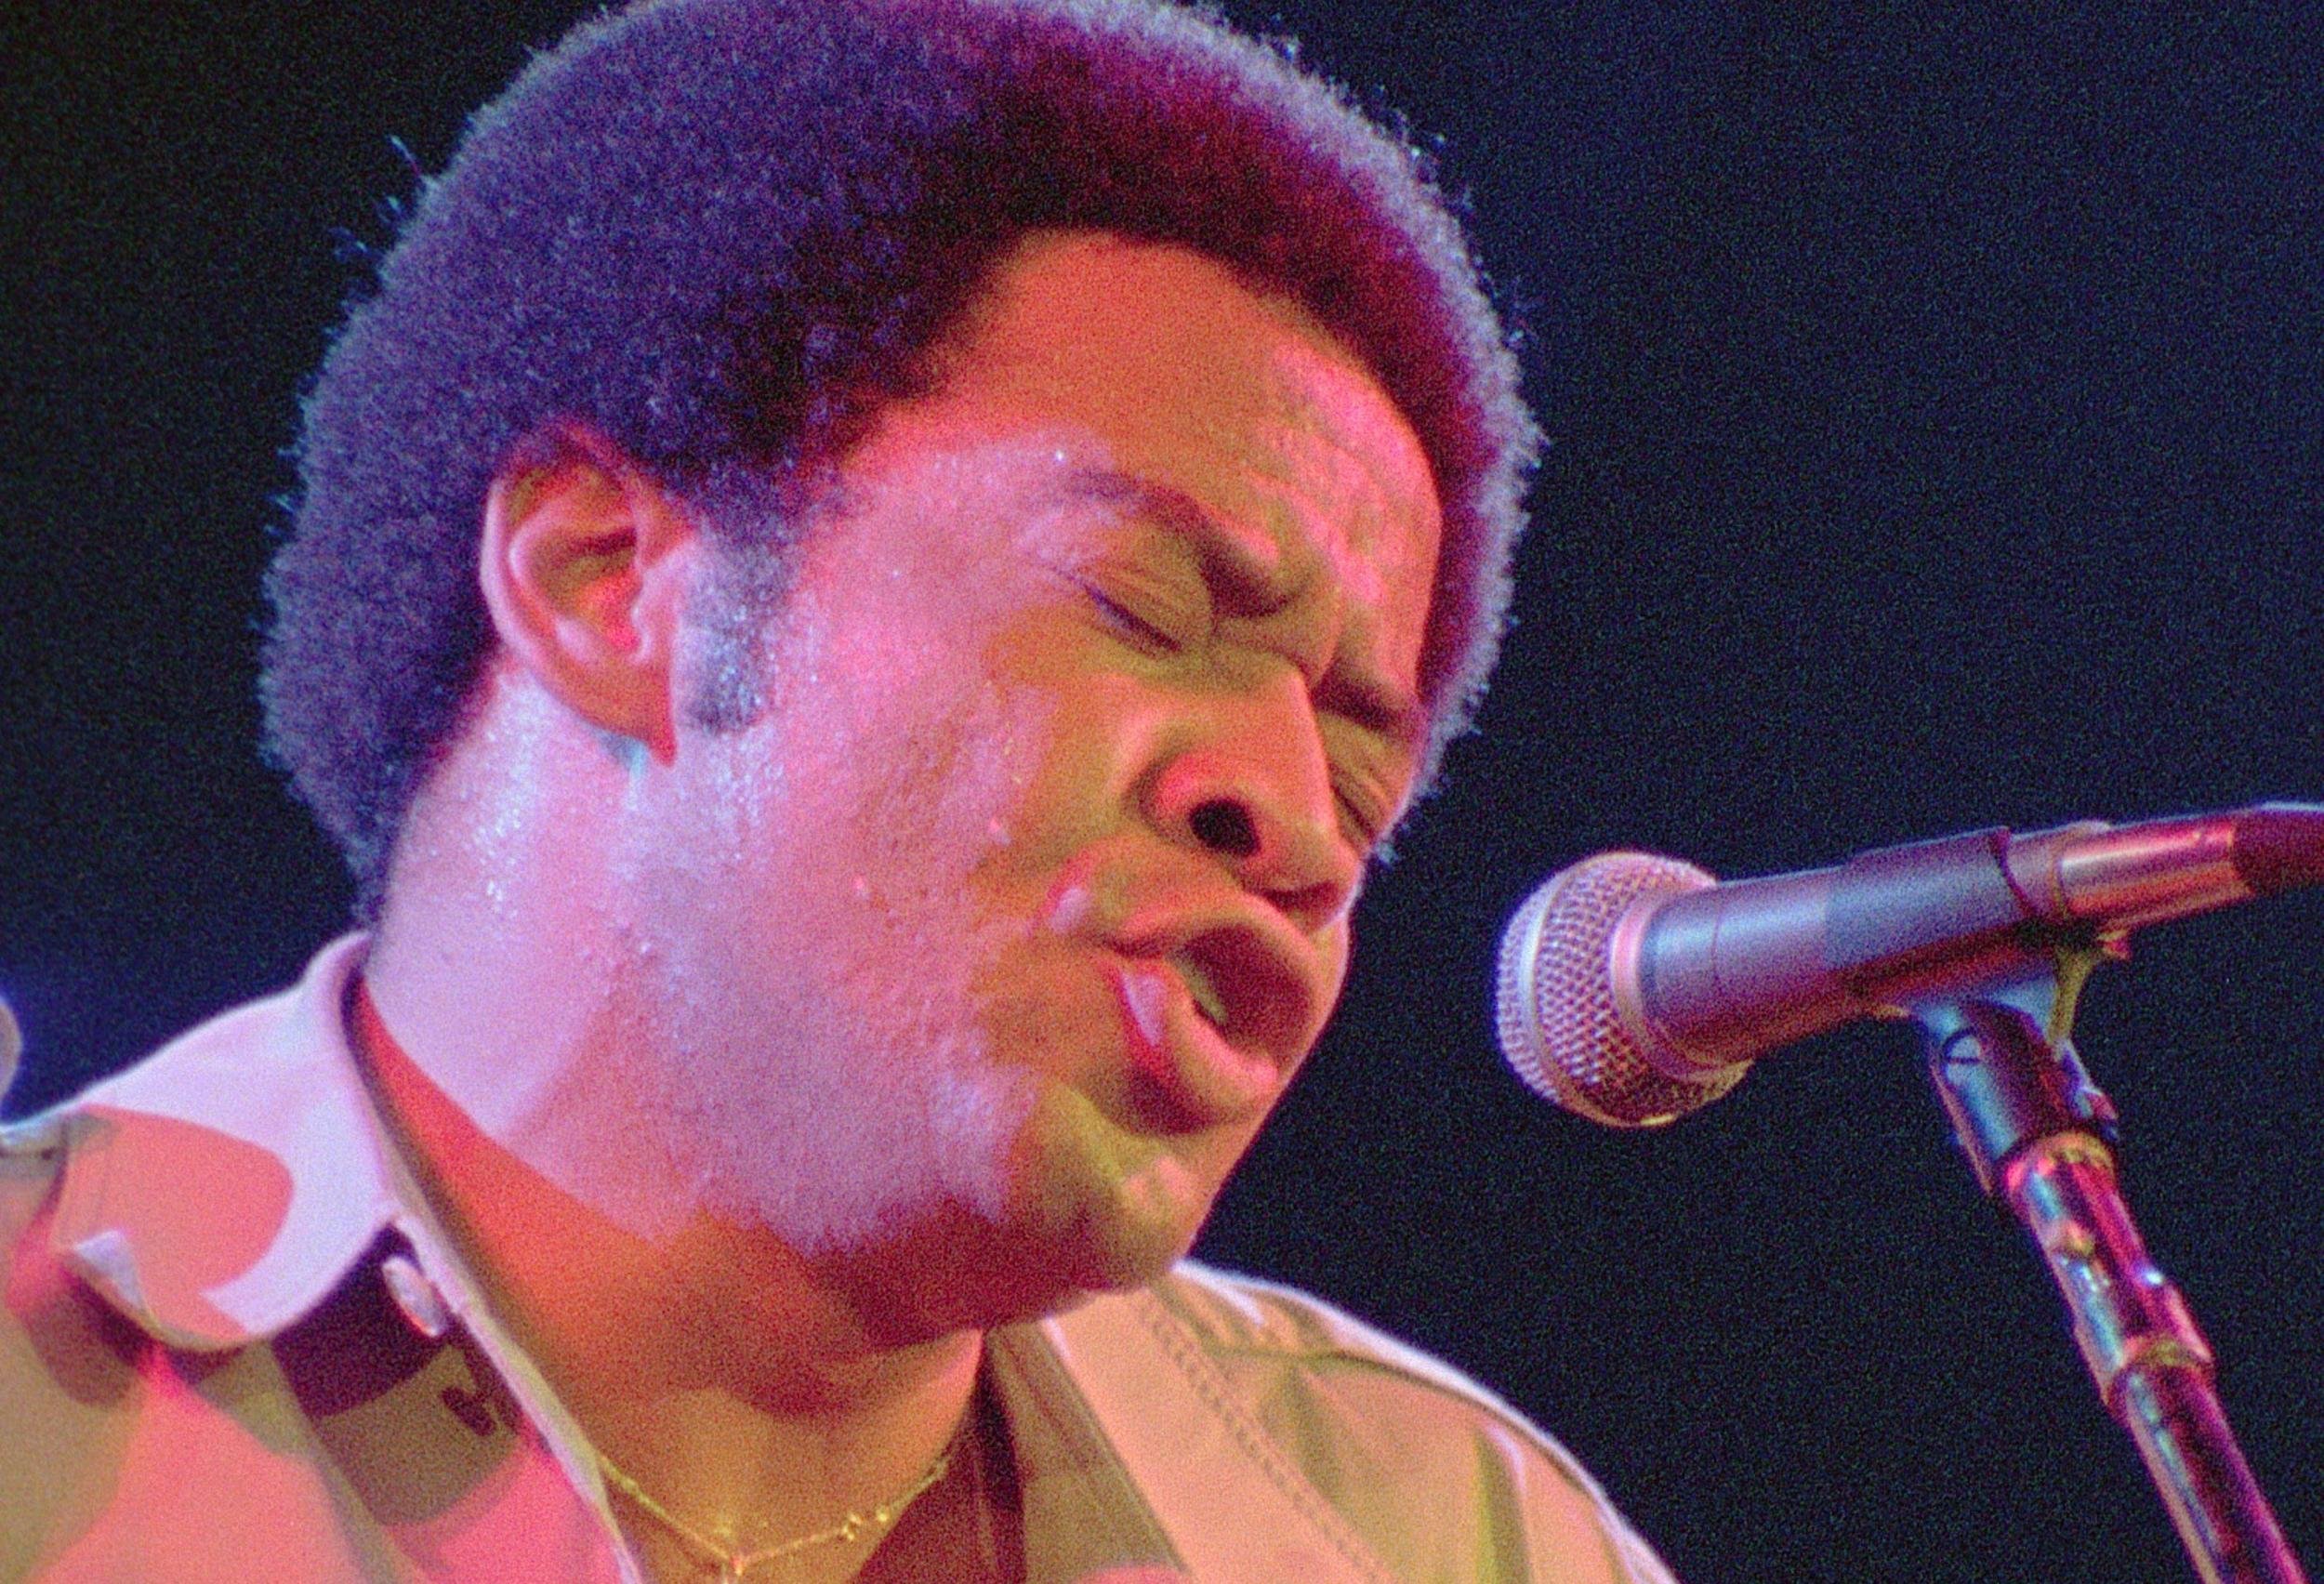 Bill Withers – the singer who poured his heart and soul into his music